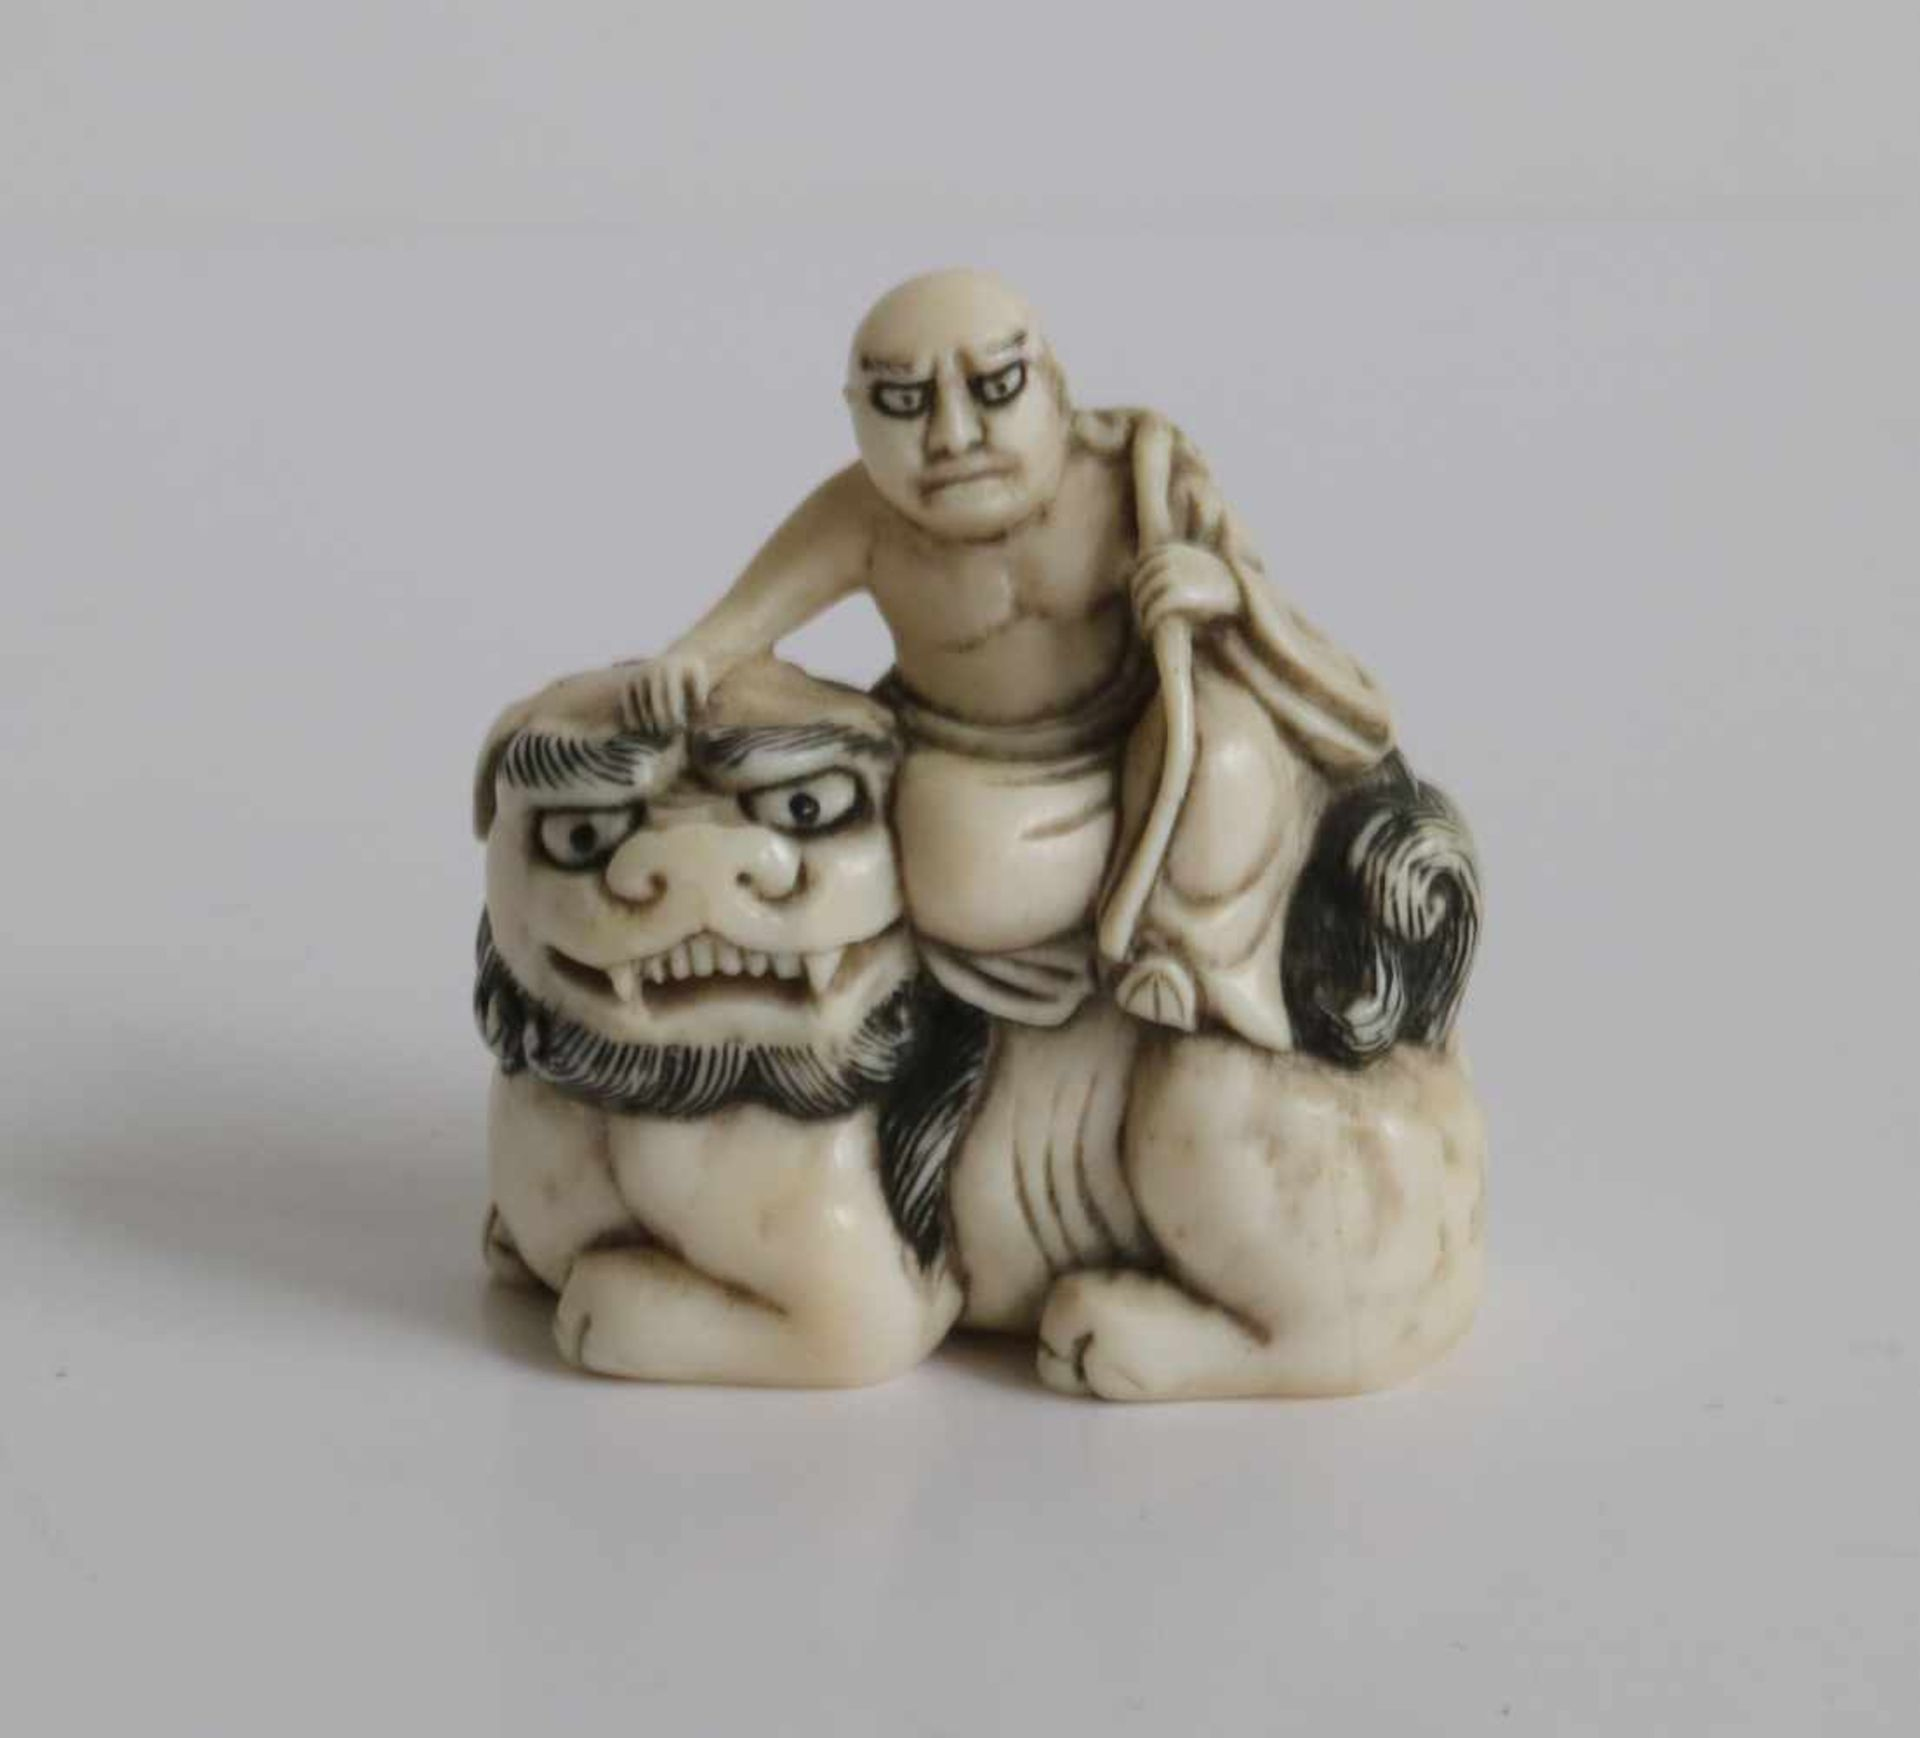 Los 475 - Carved figure of Hotei sitting on a shishi holding Aruyi scepter Japan MEIJI period H 4 cm signed